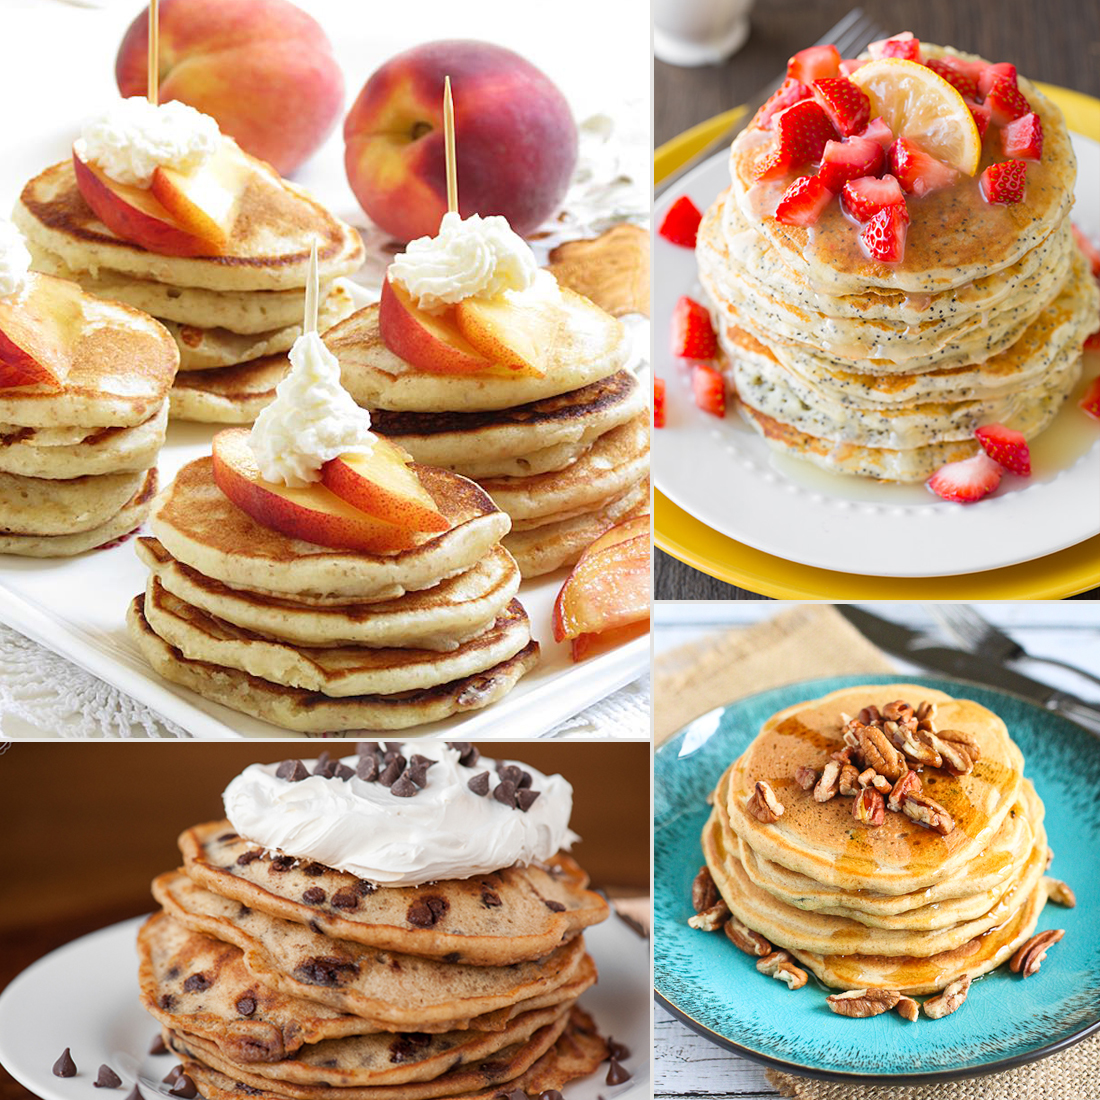 21 Pancake Recipes to Help Kids Start Their Day the Happy Way